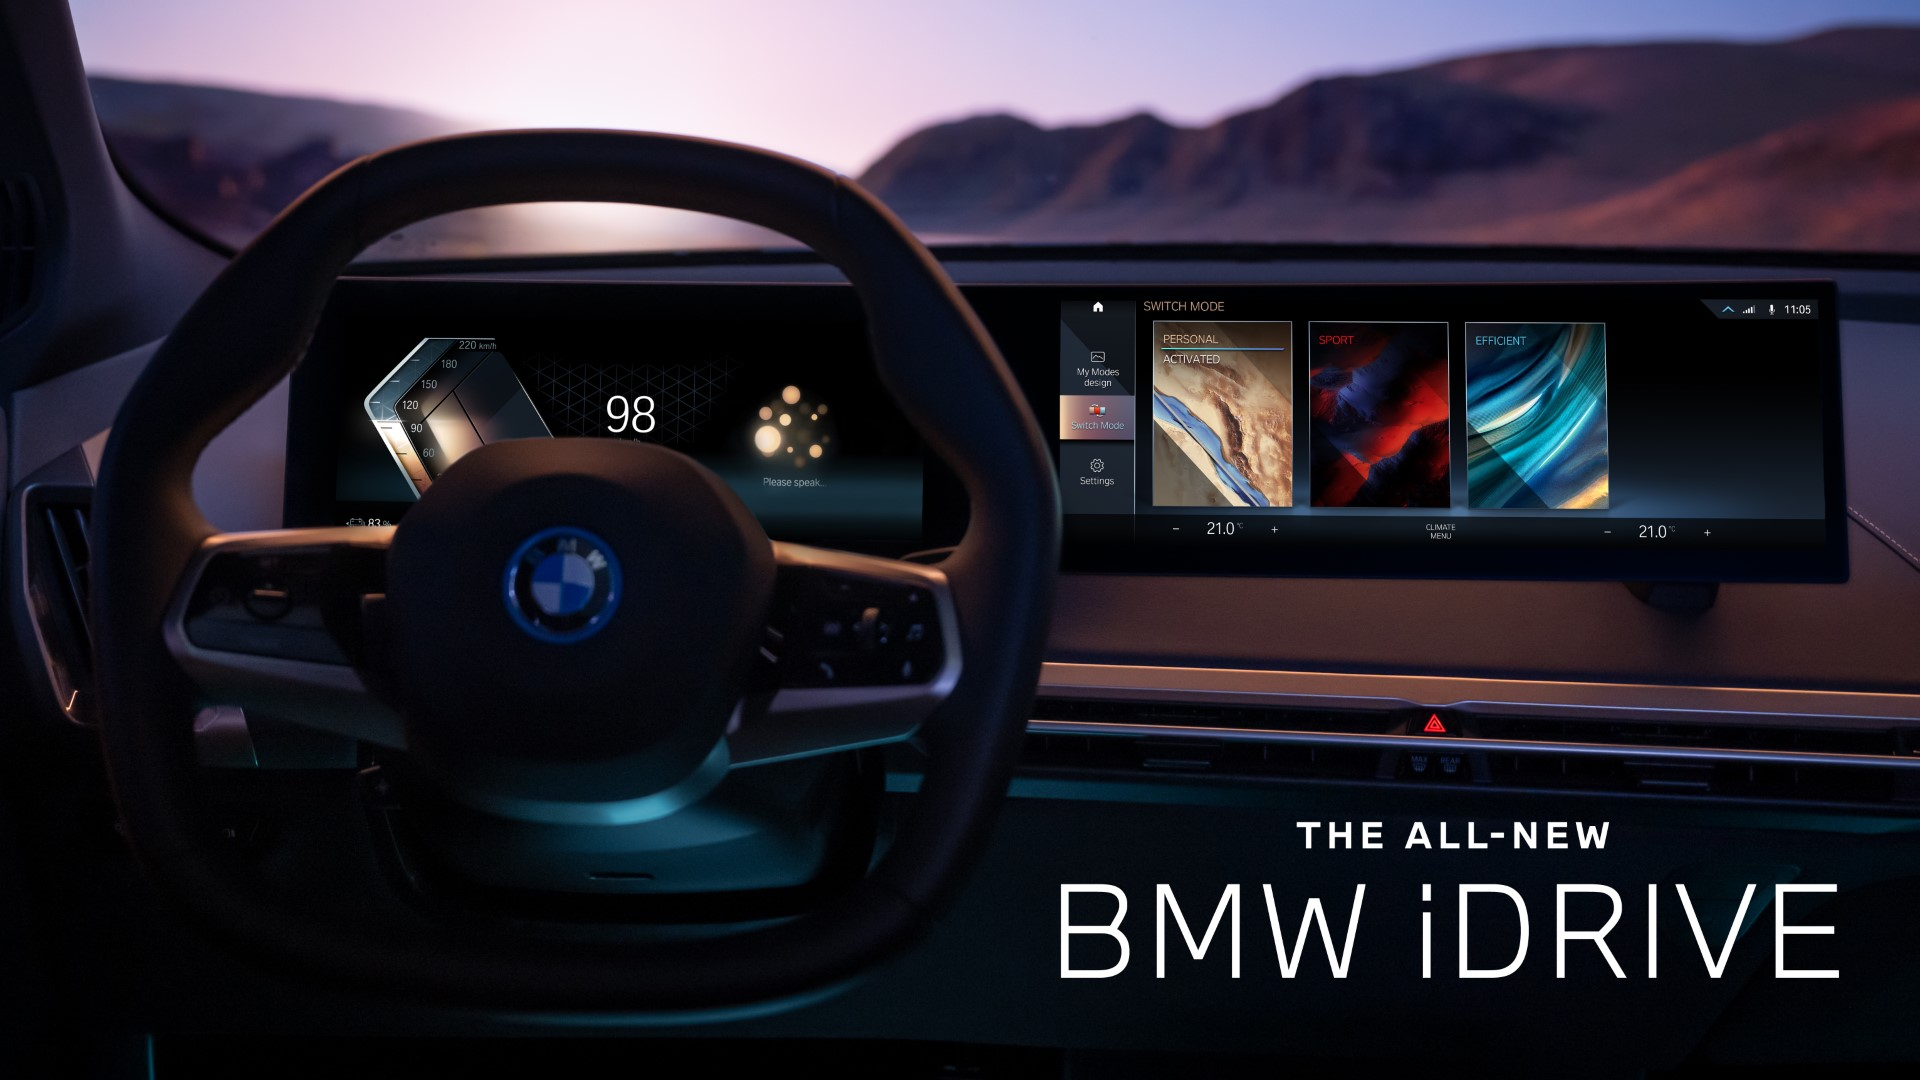 All-New BMW iDrive